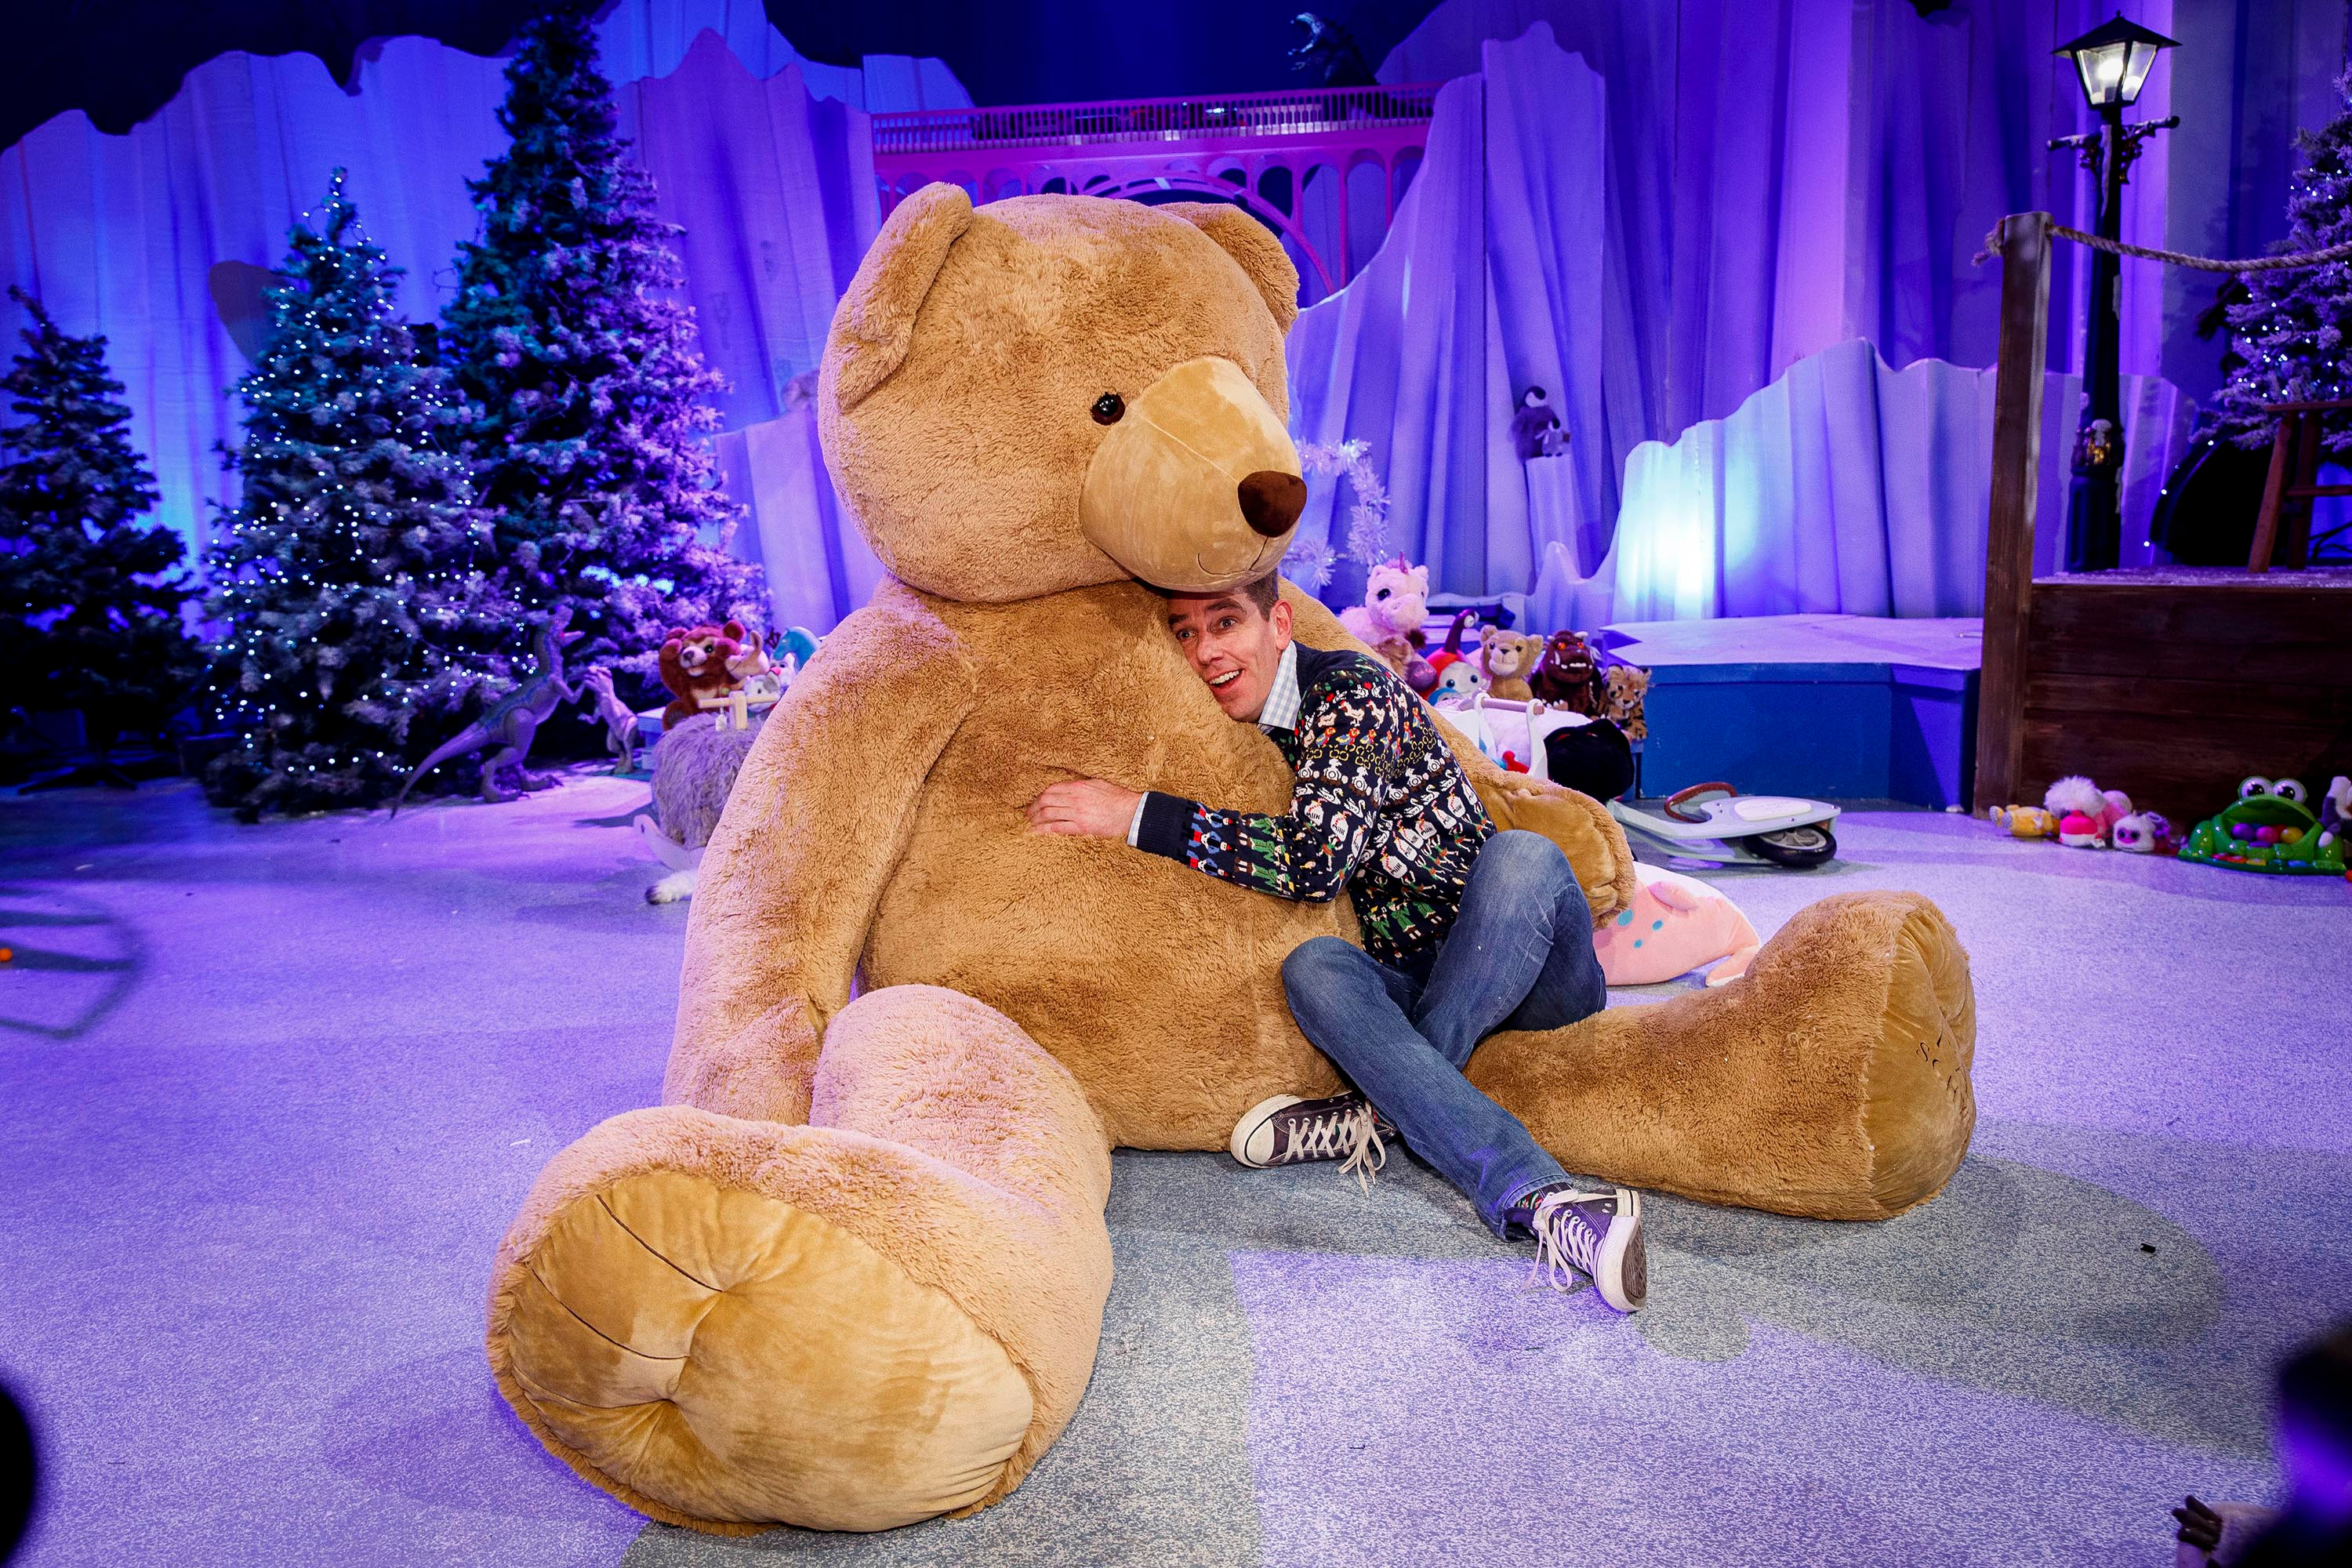 Ryan Tubridy pictured at the set reveal for The Late Late Toy Show 2019 which will take place on Friday 29th November at 9:35pm on RTÉ One. Picture: Andres Poveda